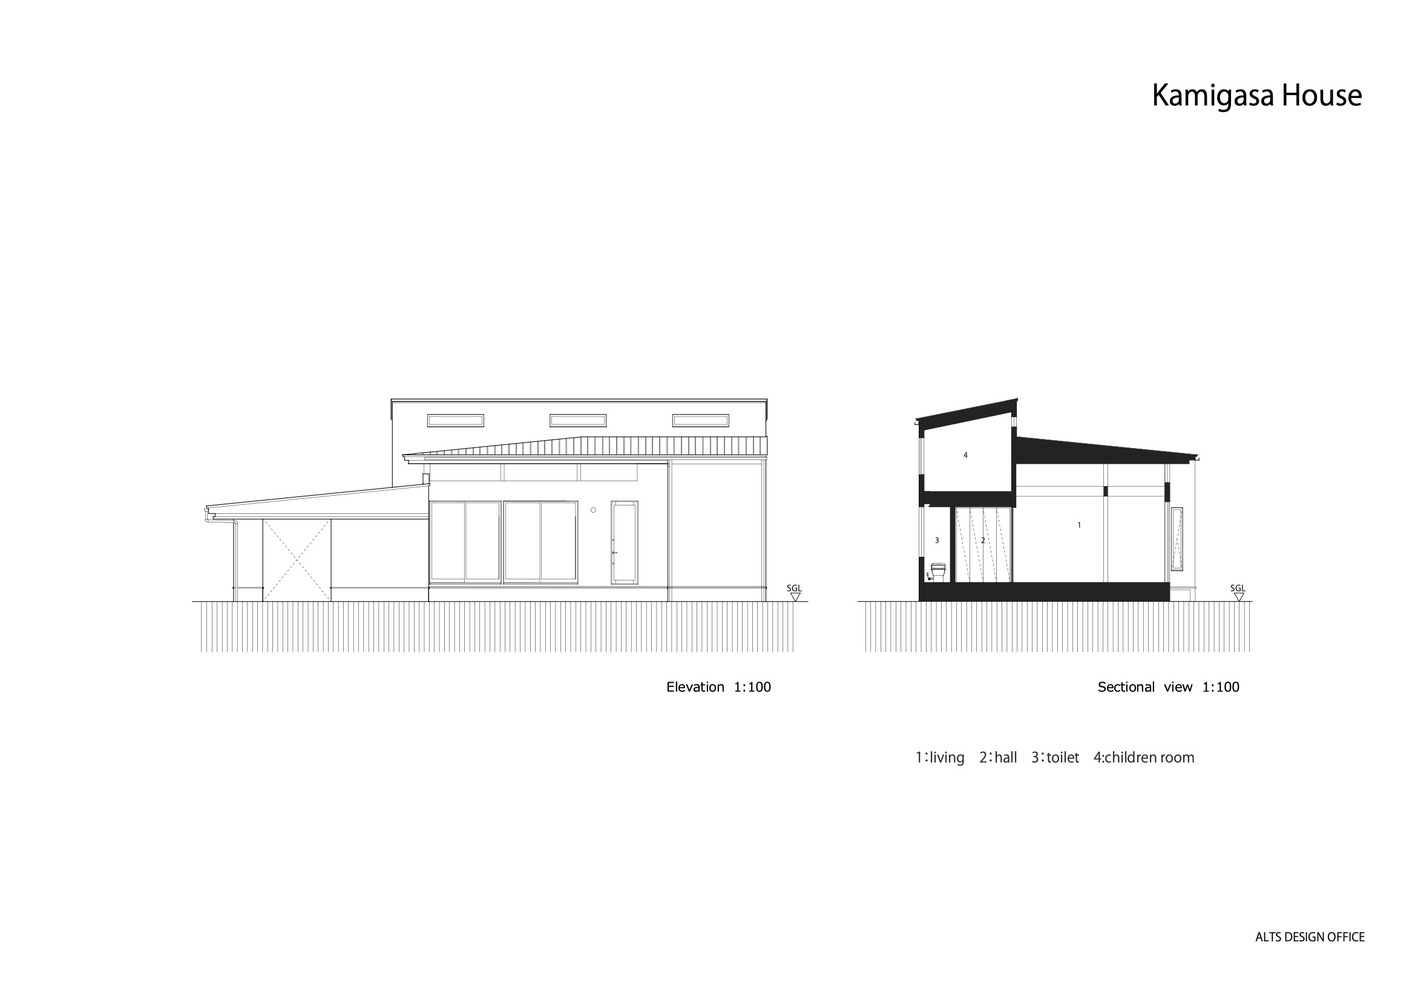 Gallery Of Kamikasa House Alts Design Office 41